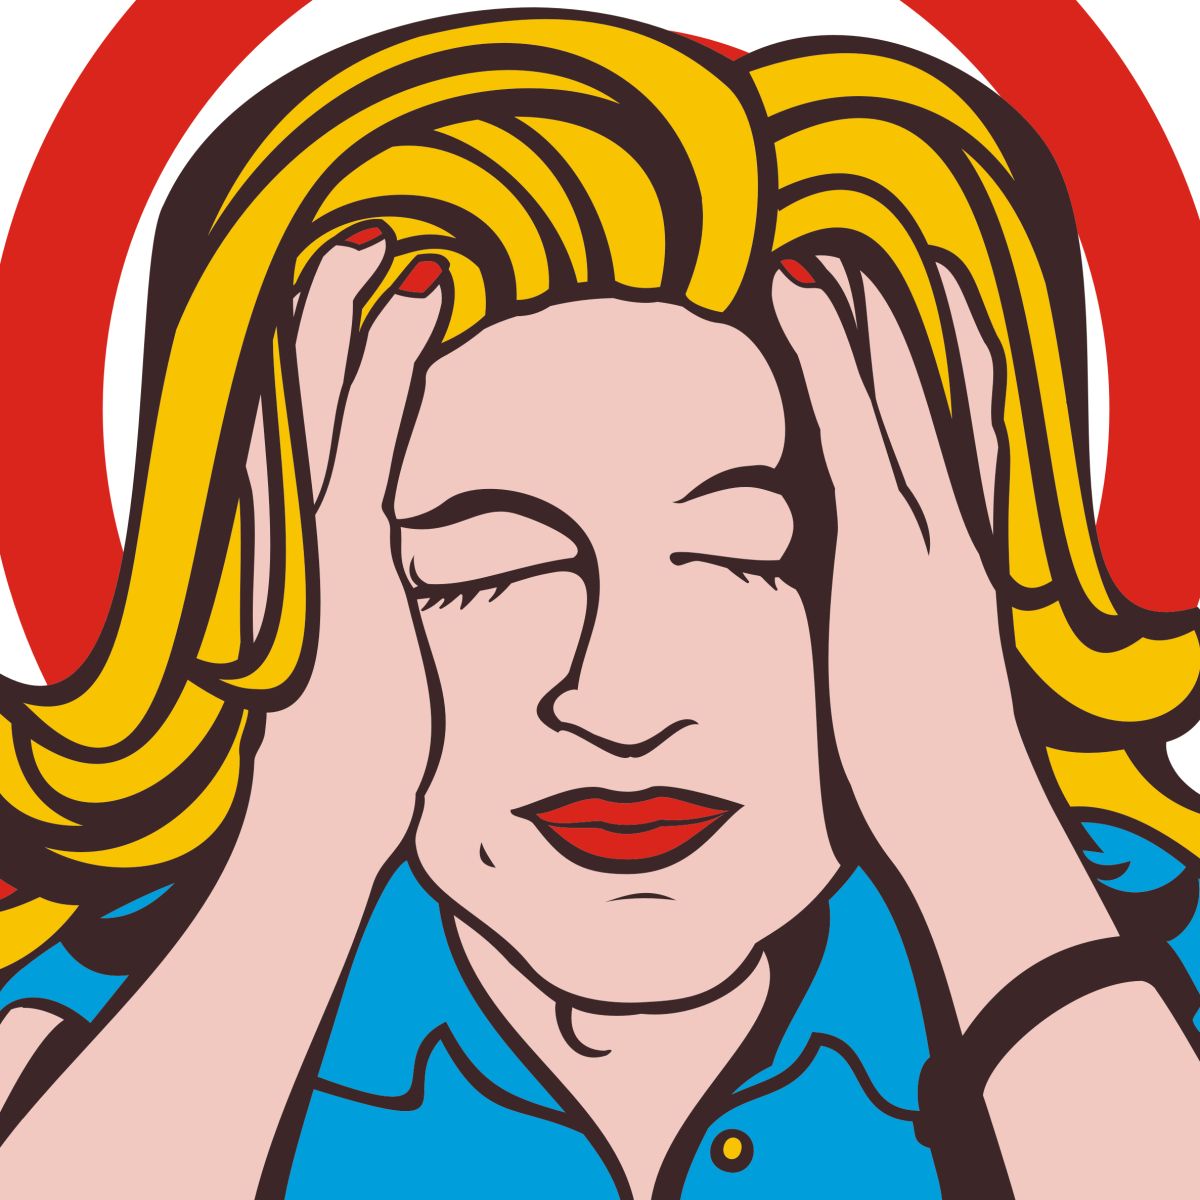 Calm clipart calm woman. Yes you can down